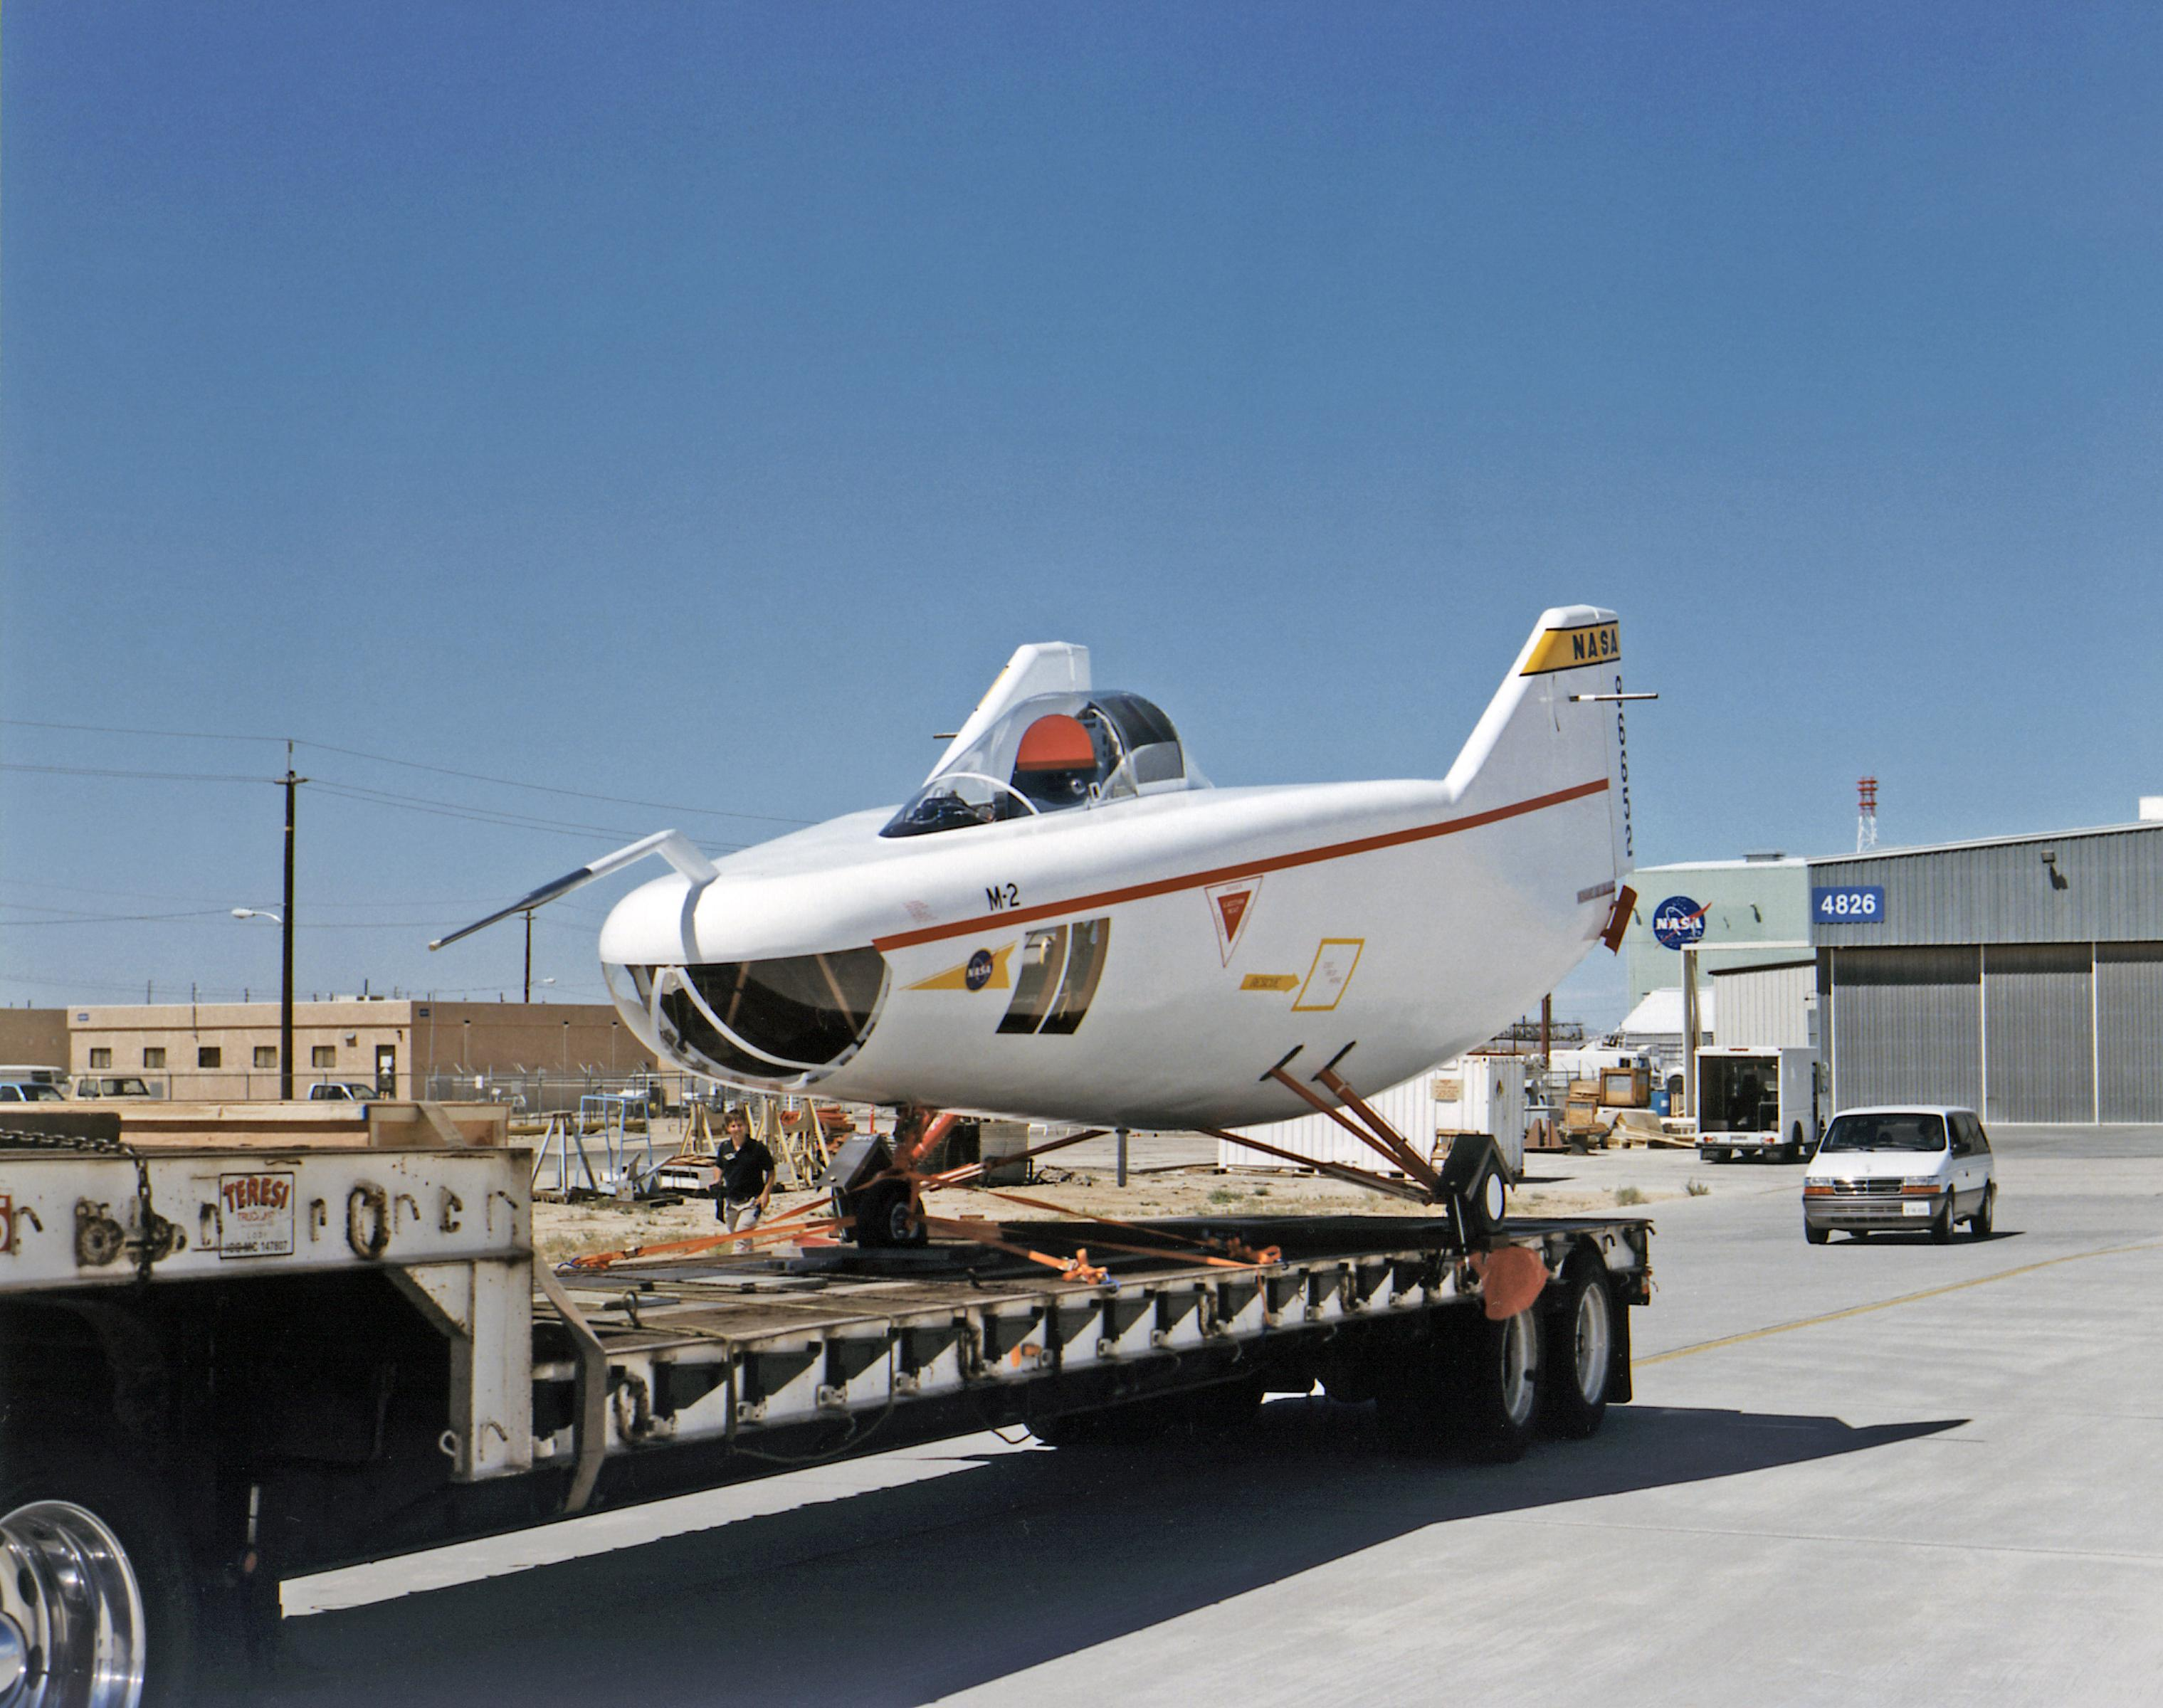 Lifting Body NASA M2-F1 (page 3) - Pics about space